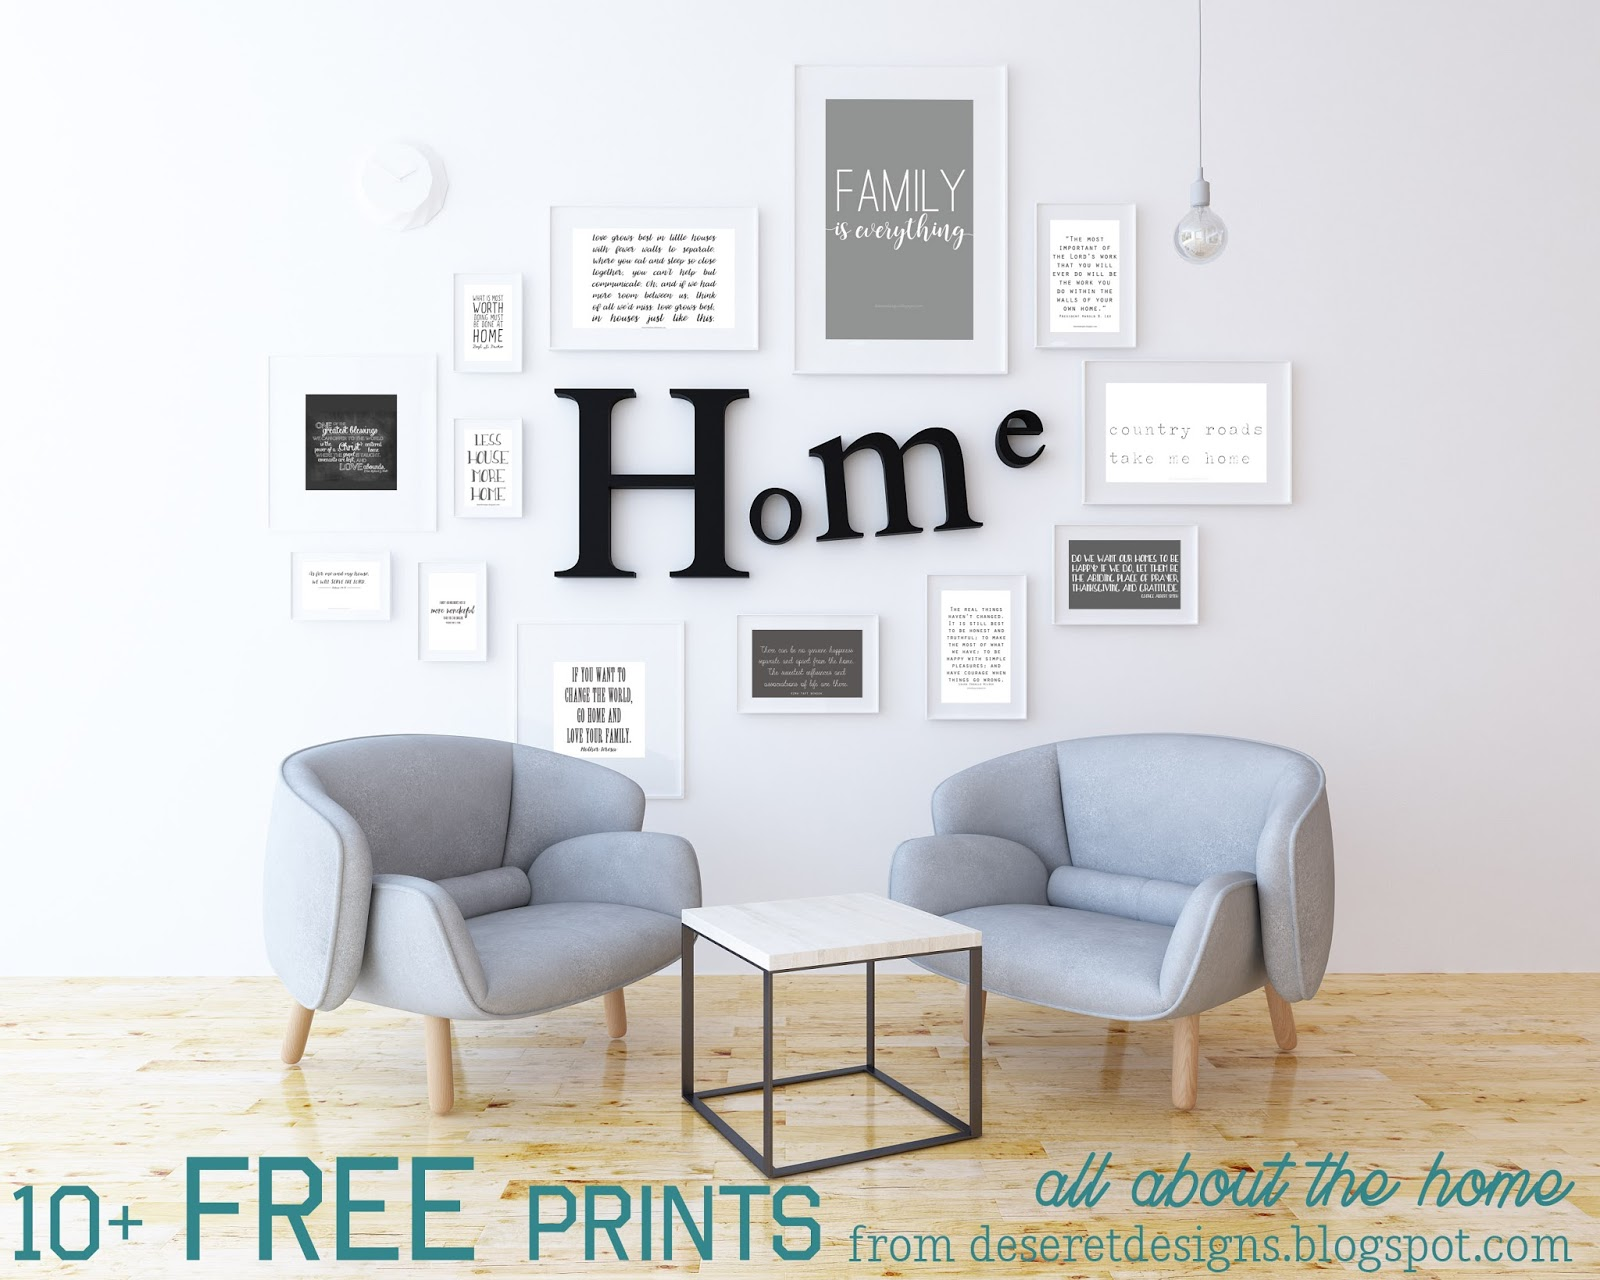 Deseret Designs 10 Free Quotes On The Home That Are Great For Printing